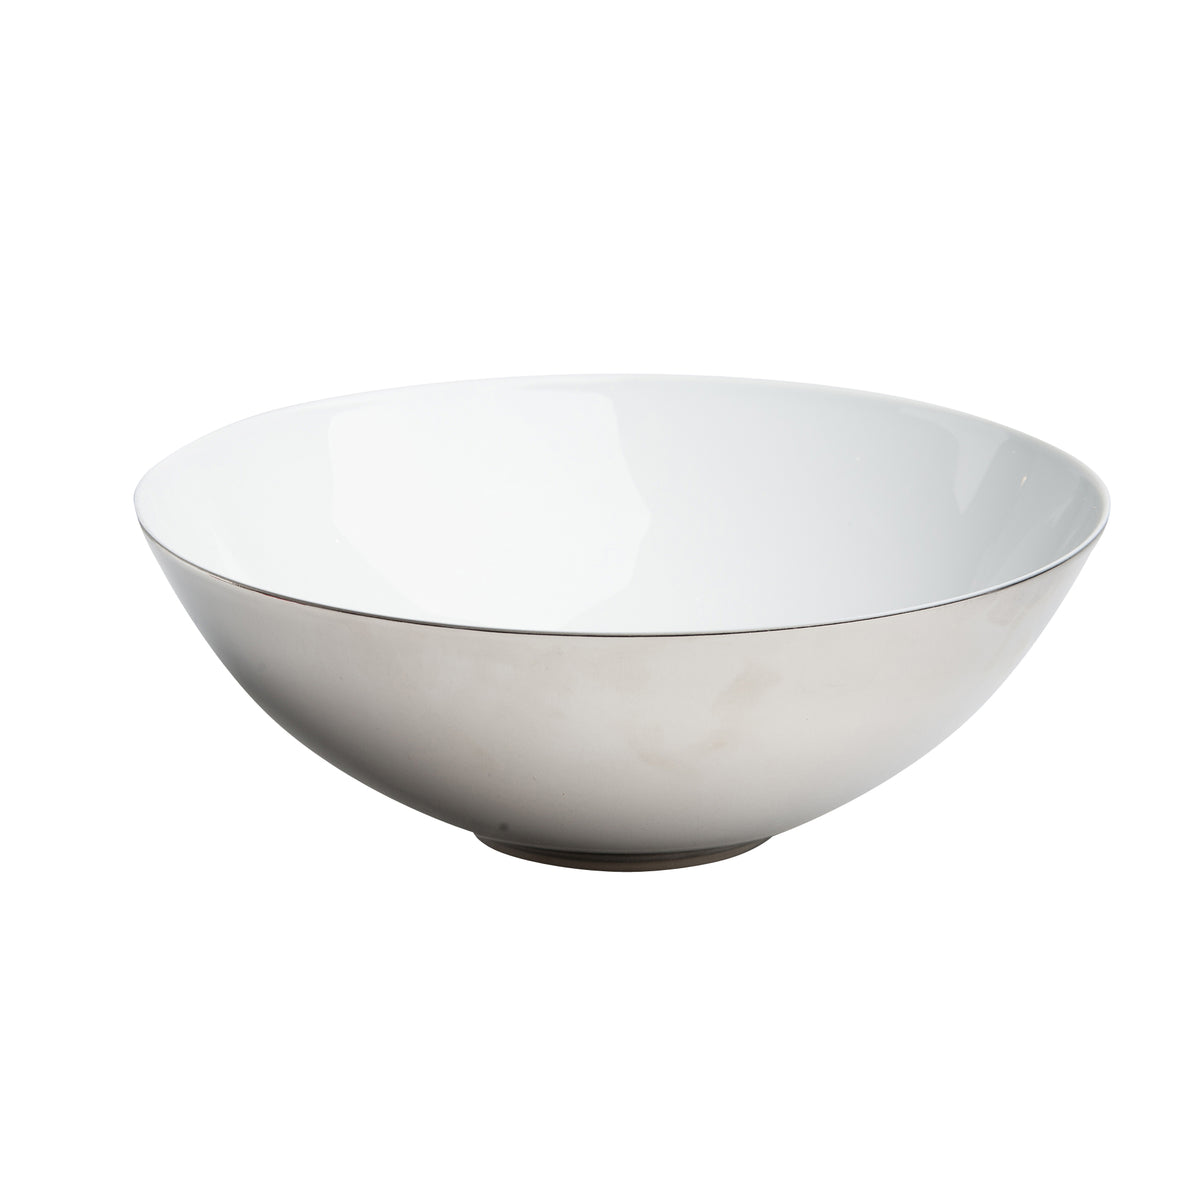 Skin Platinum Porcelain Vegetable Bowl